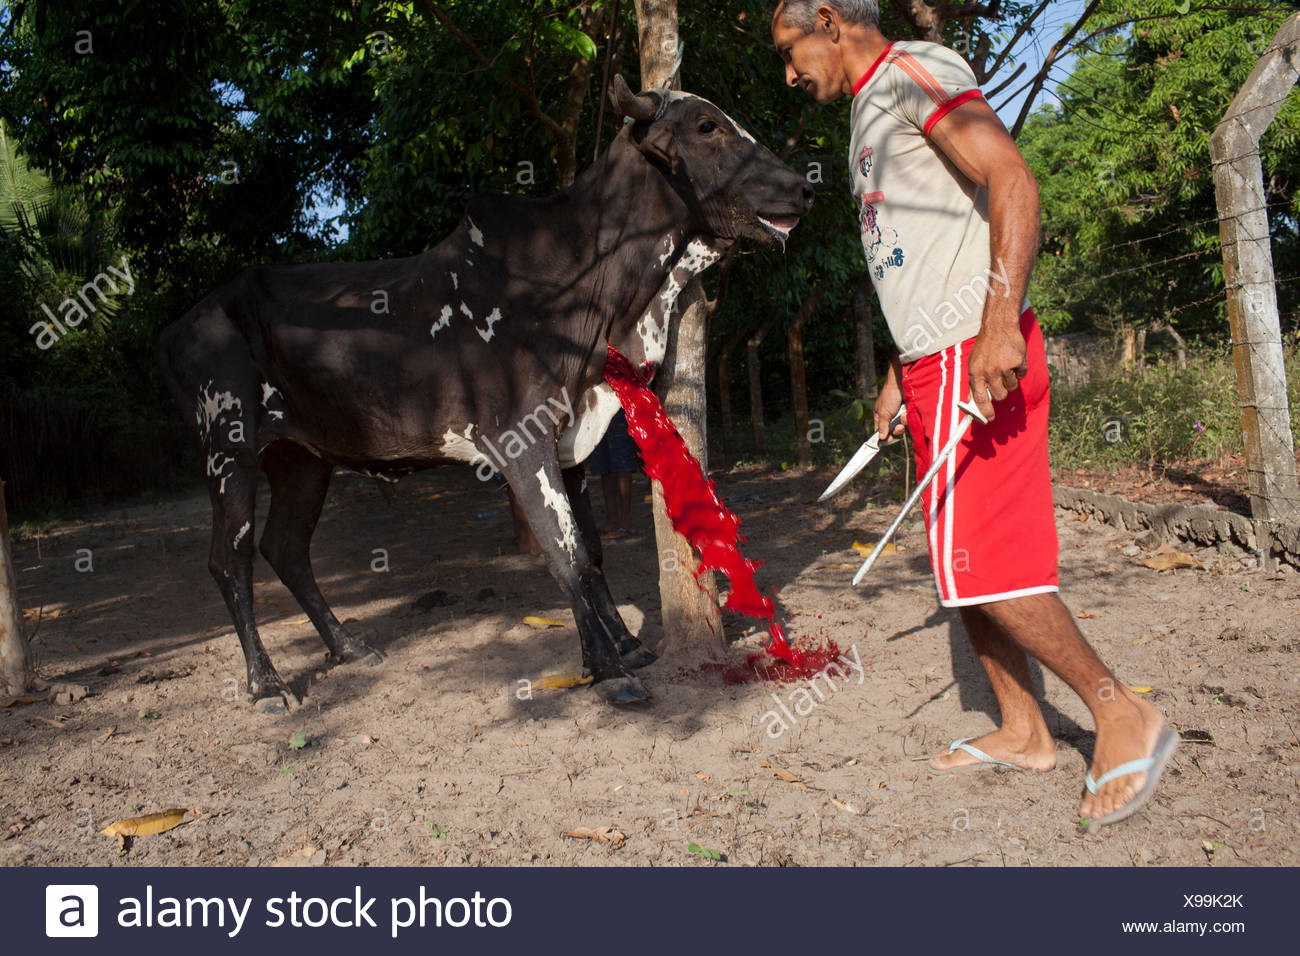 A cow is slaughtered for the Feast of the Divine Saint Spirit. - Stock Image